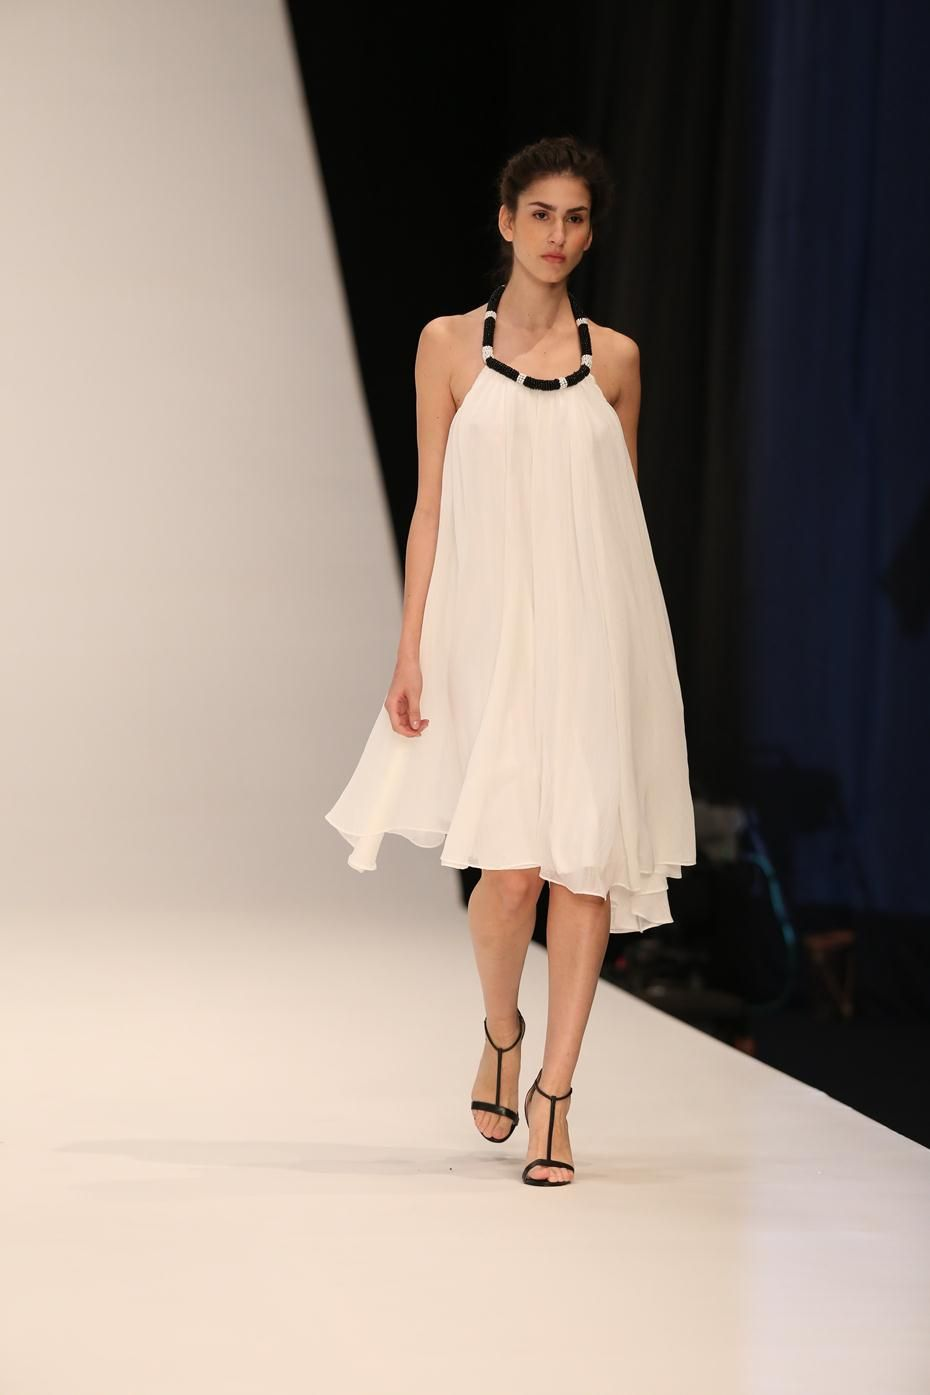 A Beaded Collar White Trapeze Dress Perfect For Those Summer Nights Out Limited Edition From The Castro Spring 20 Fashion Runway Collection Clothes For Women [ 1395 x 930 Pixel ]